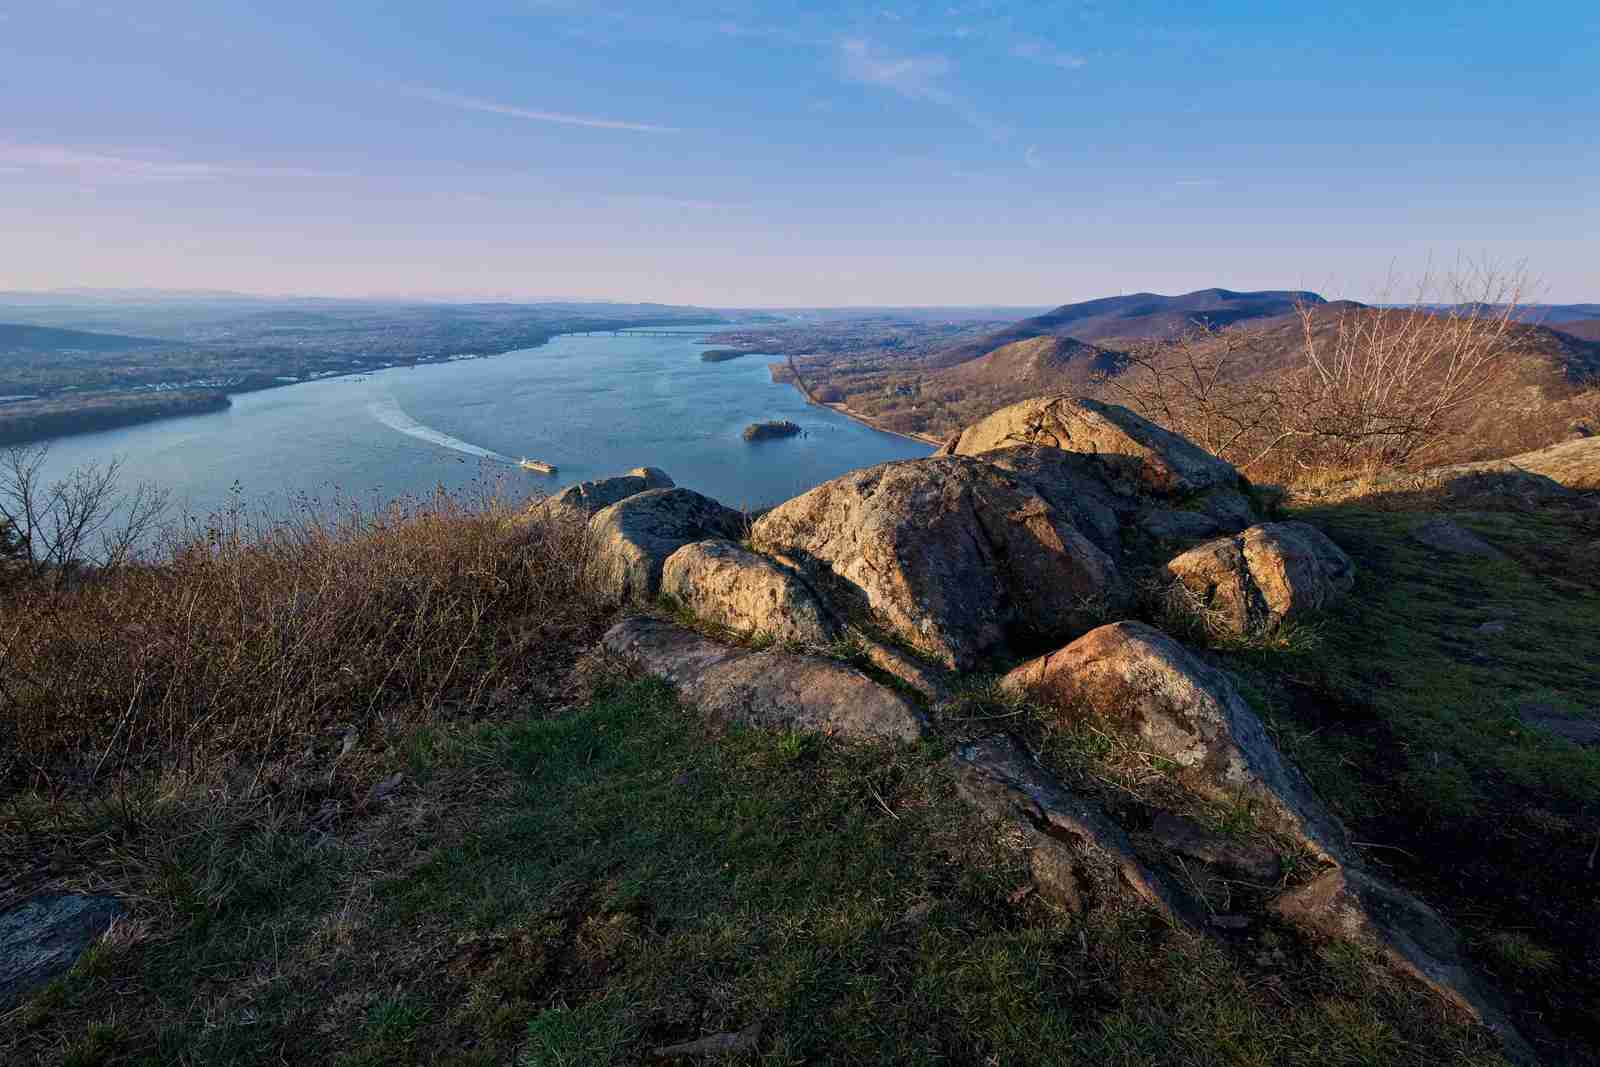 Storm King Mountain over Cornwall-on-Hudson. (Photo by Michael Neil ODonnel/Getty Images)